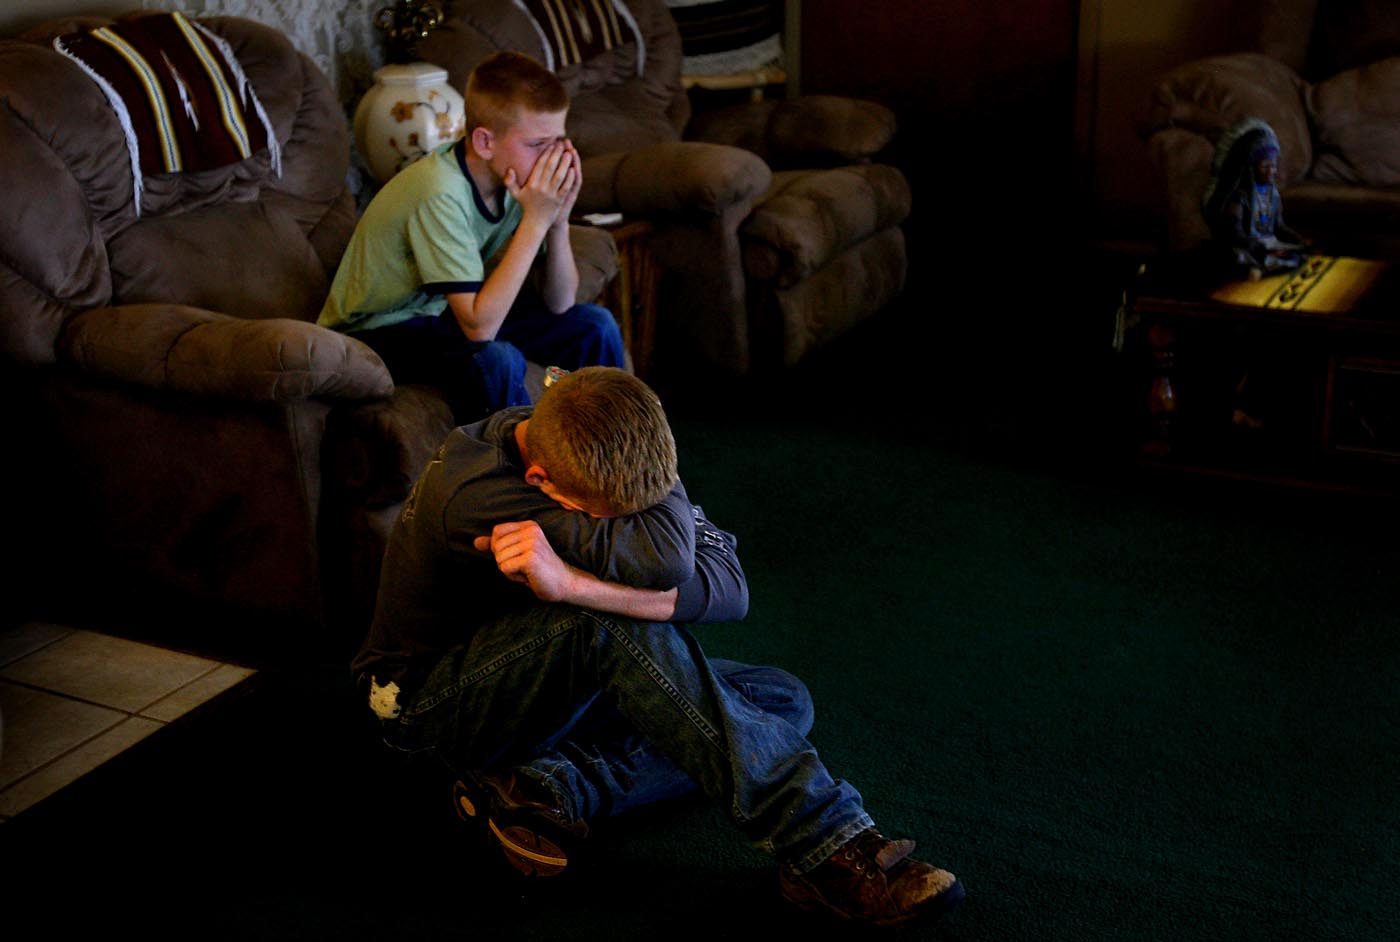 Jake, 11, and Cody Schwartz, 15, watch the news at their grandmother's house in Fowler, Colo. Their father, volunteer fire fighter John Schwartz, was killed the day before when the bridge he was driving on collapsed underneath him as he rushed to fight a fire in Ordway.